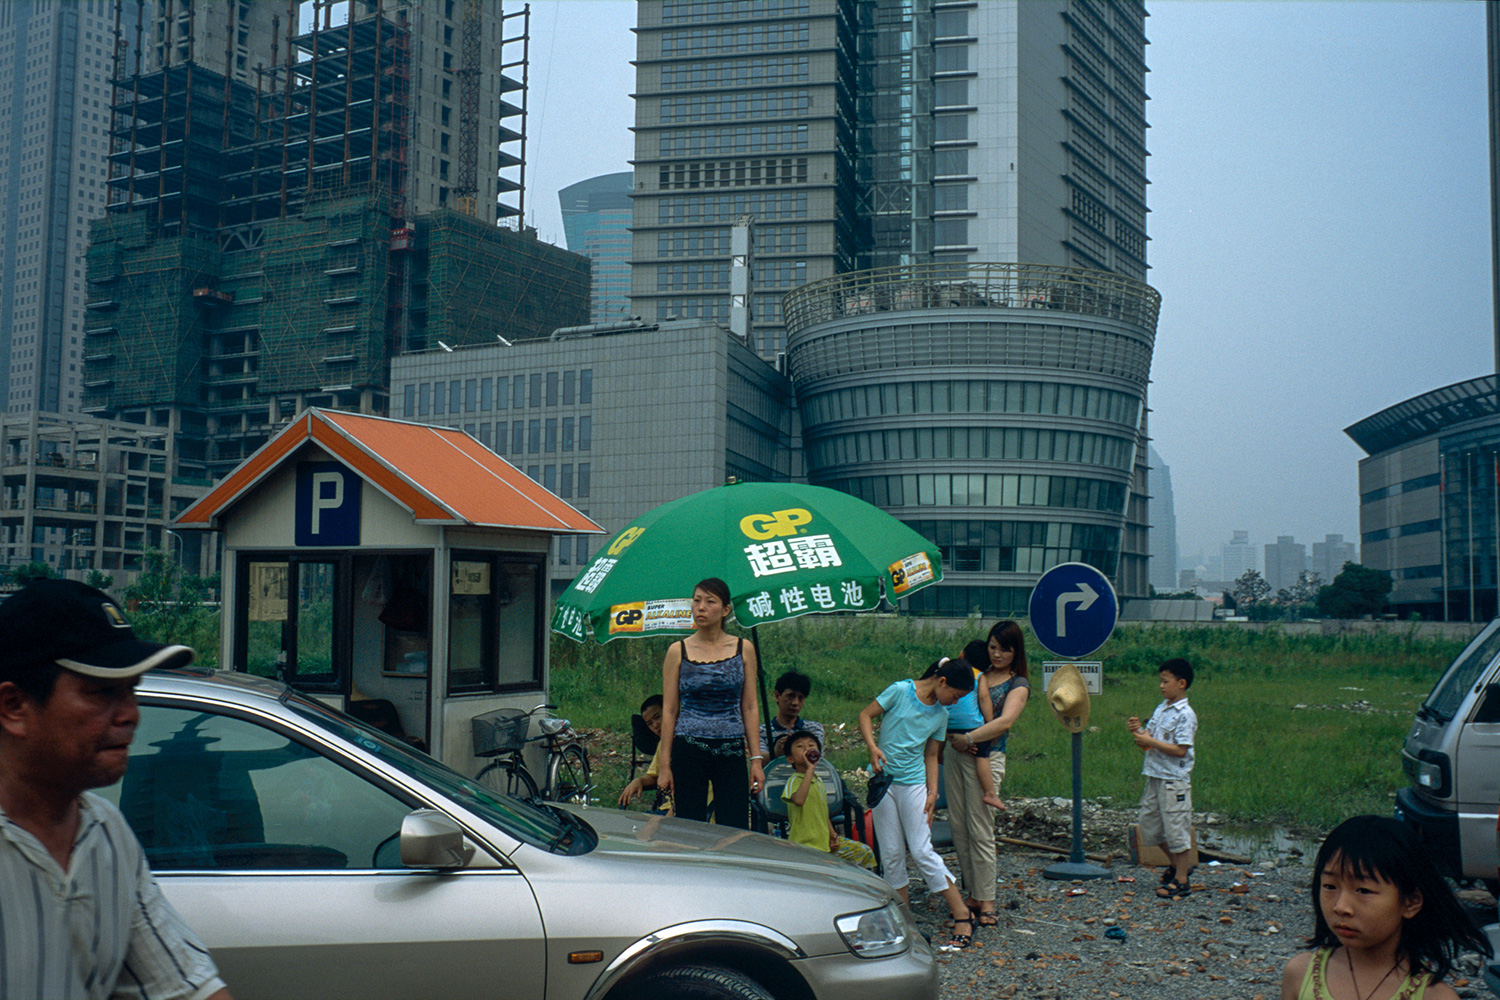 A building site in Lujiazui becomes an impromptu parking lot when construction there stalled, 2003.